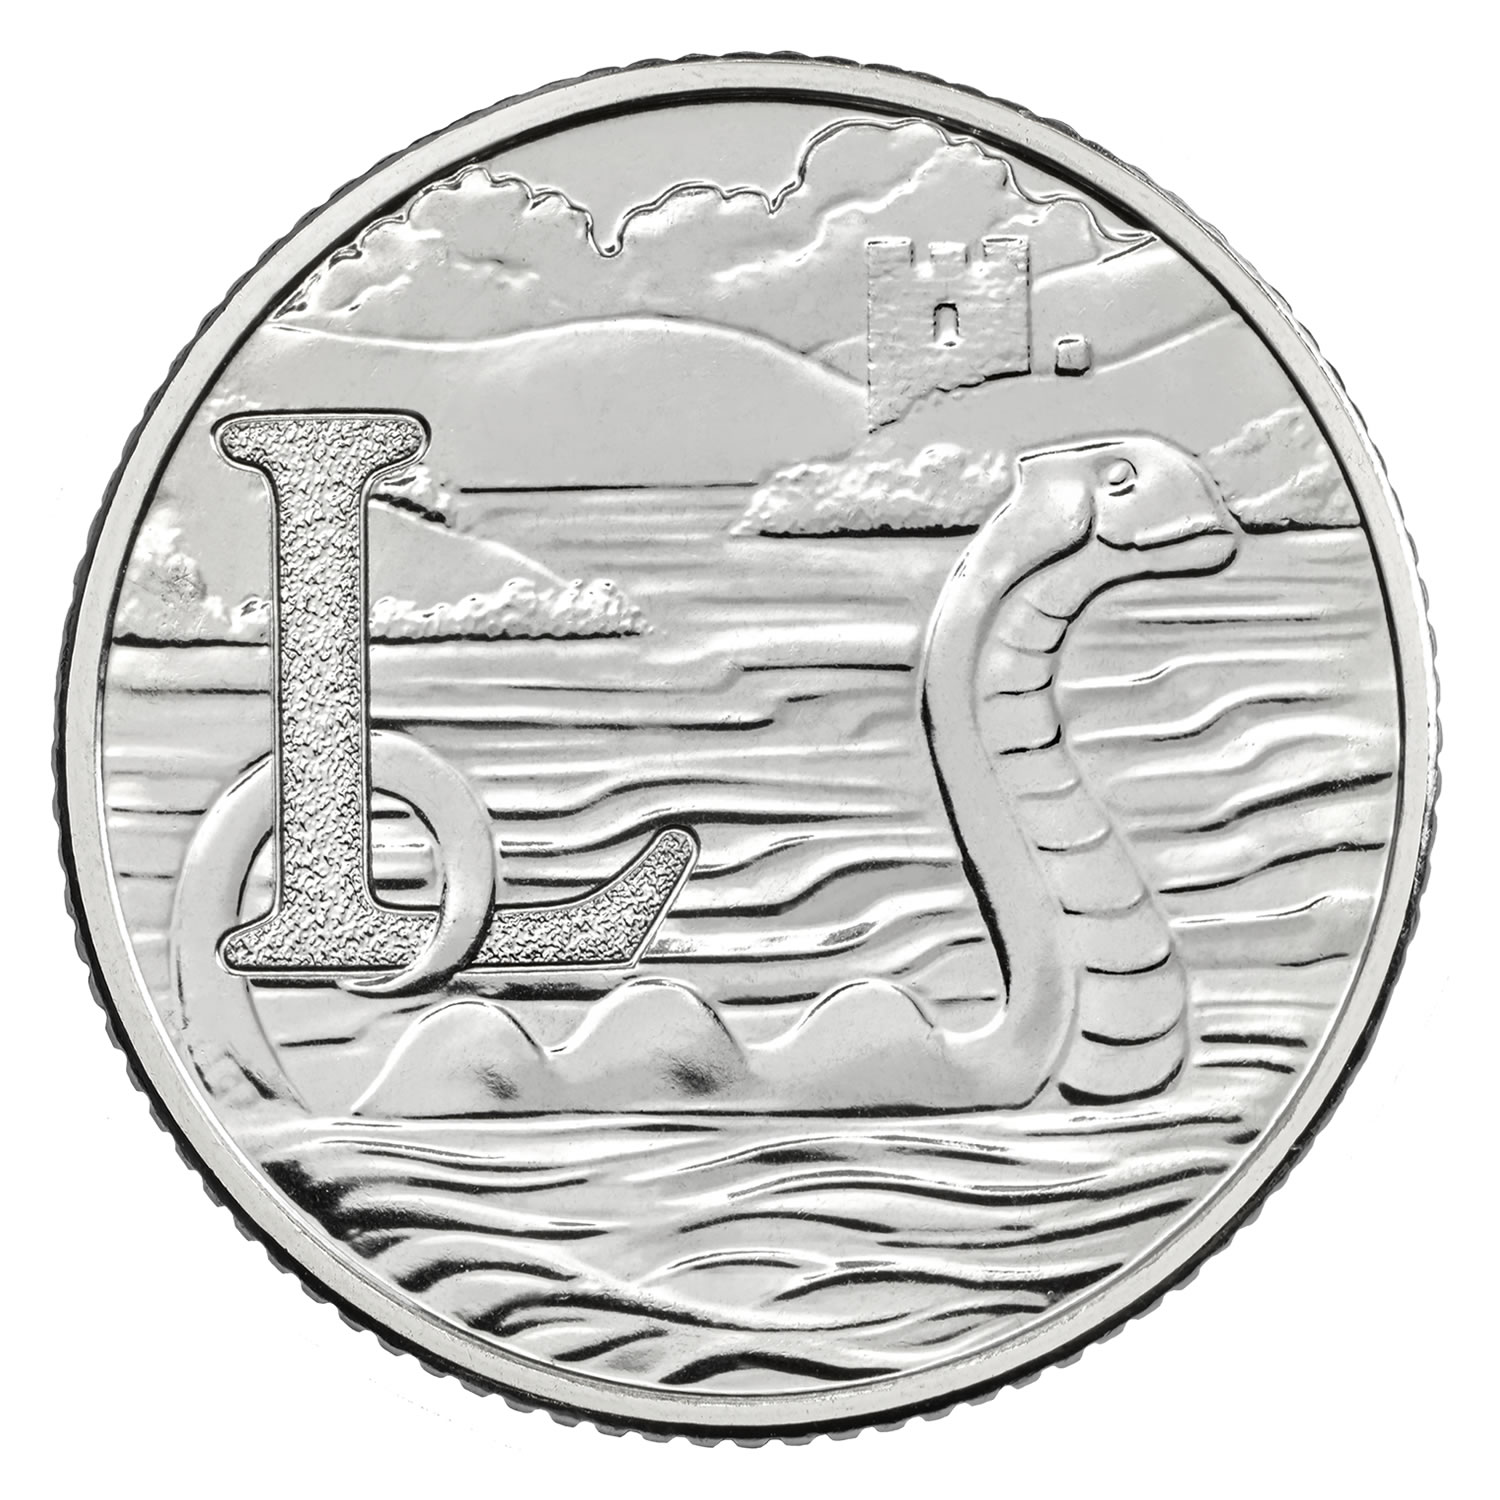 L - Loch Ness Monster 2018 UK 10p Early Strike Uncirculated Coin